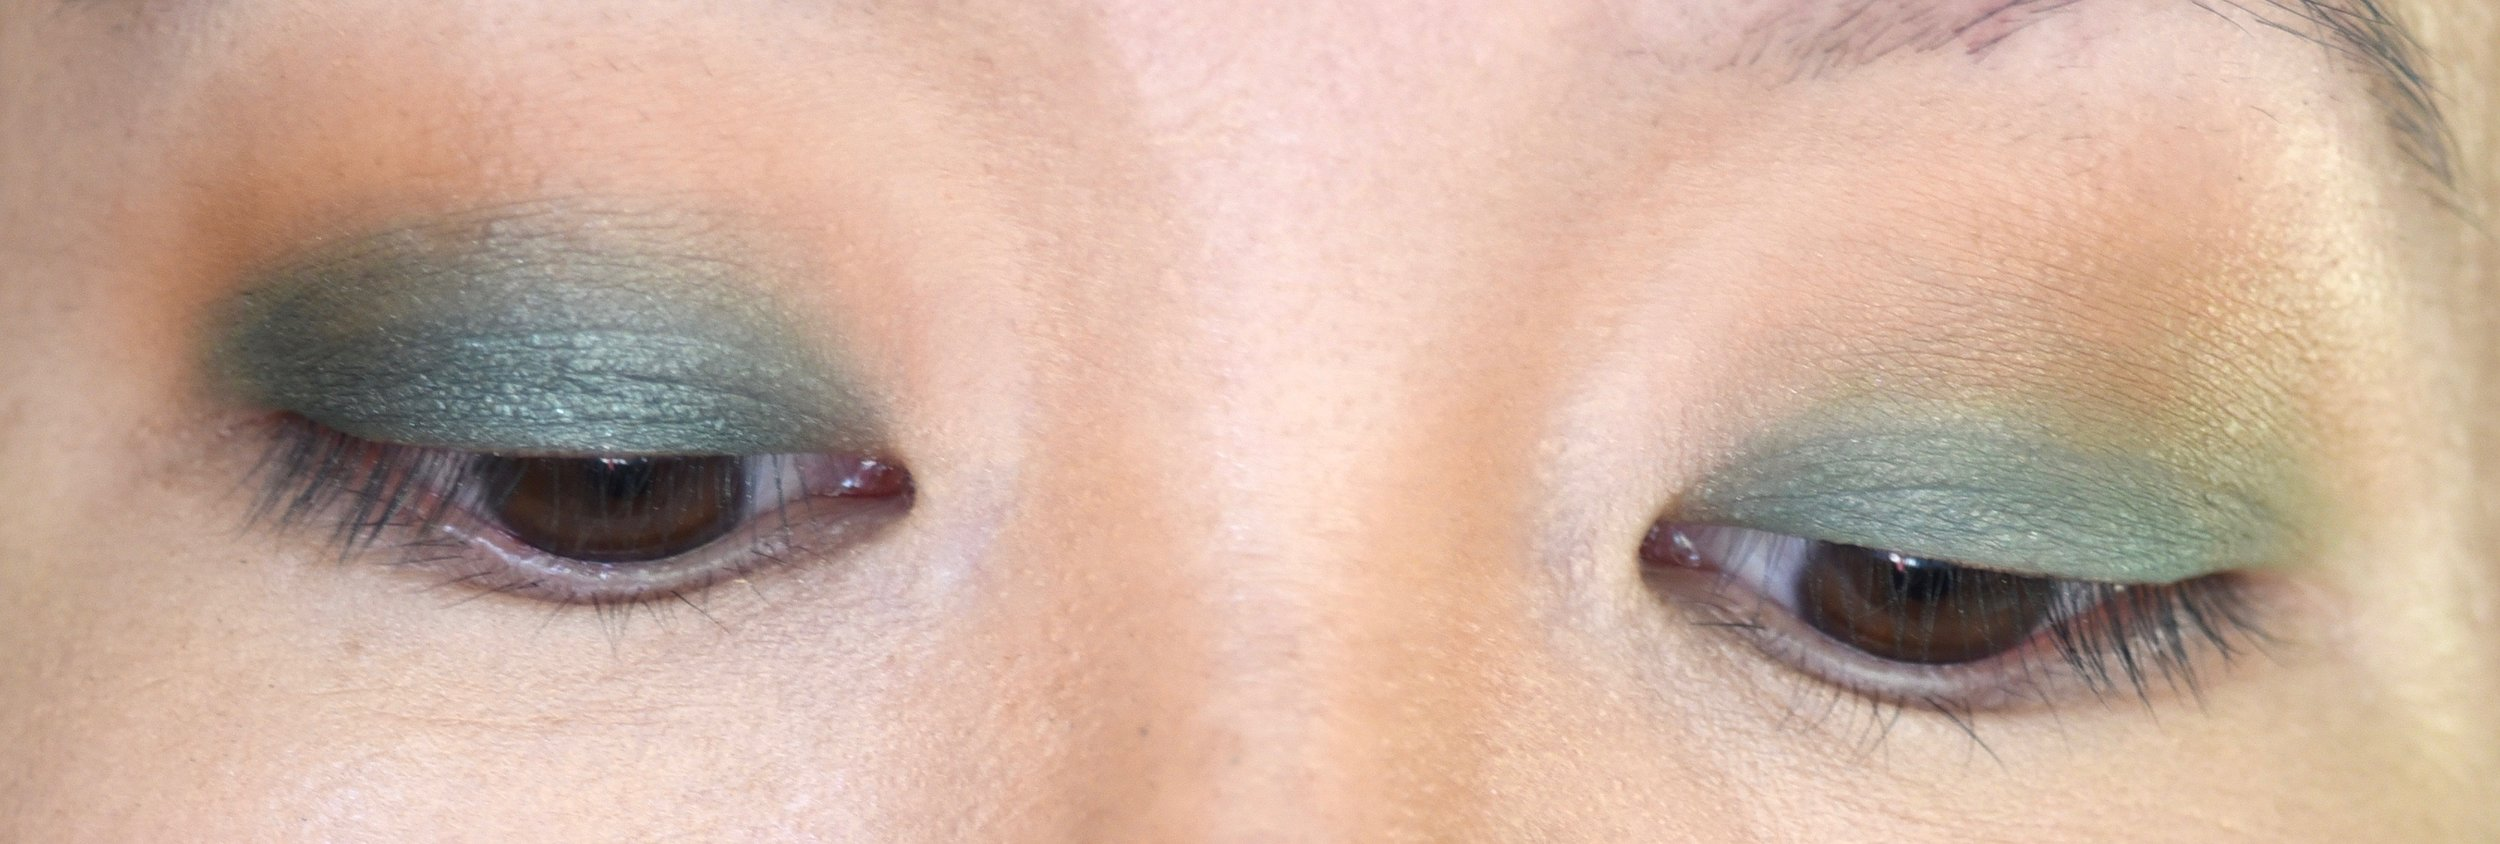 Left eye has shimmer shadow applied vs right